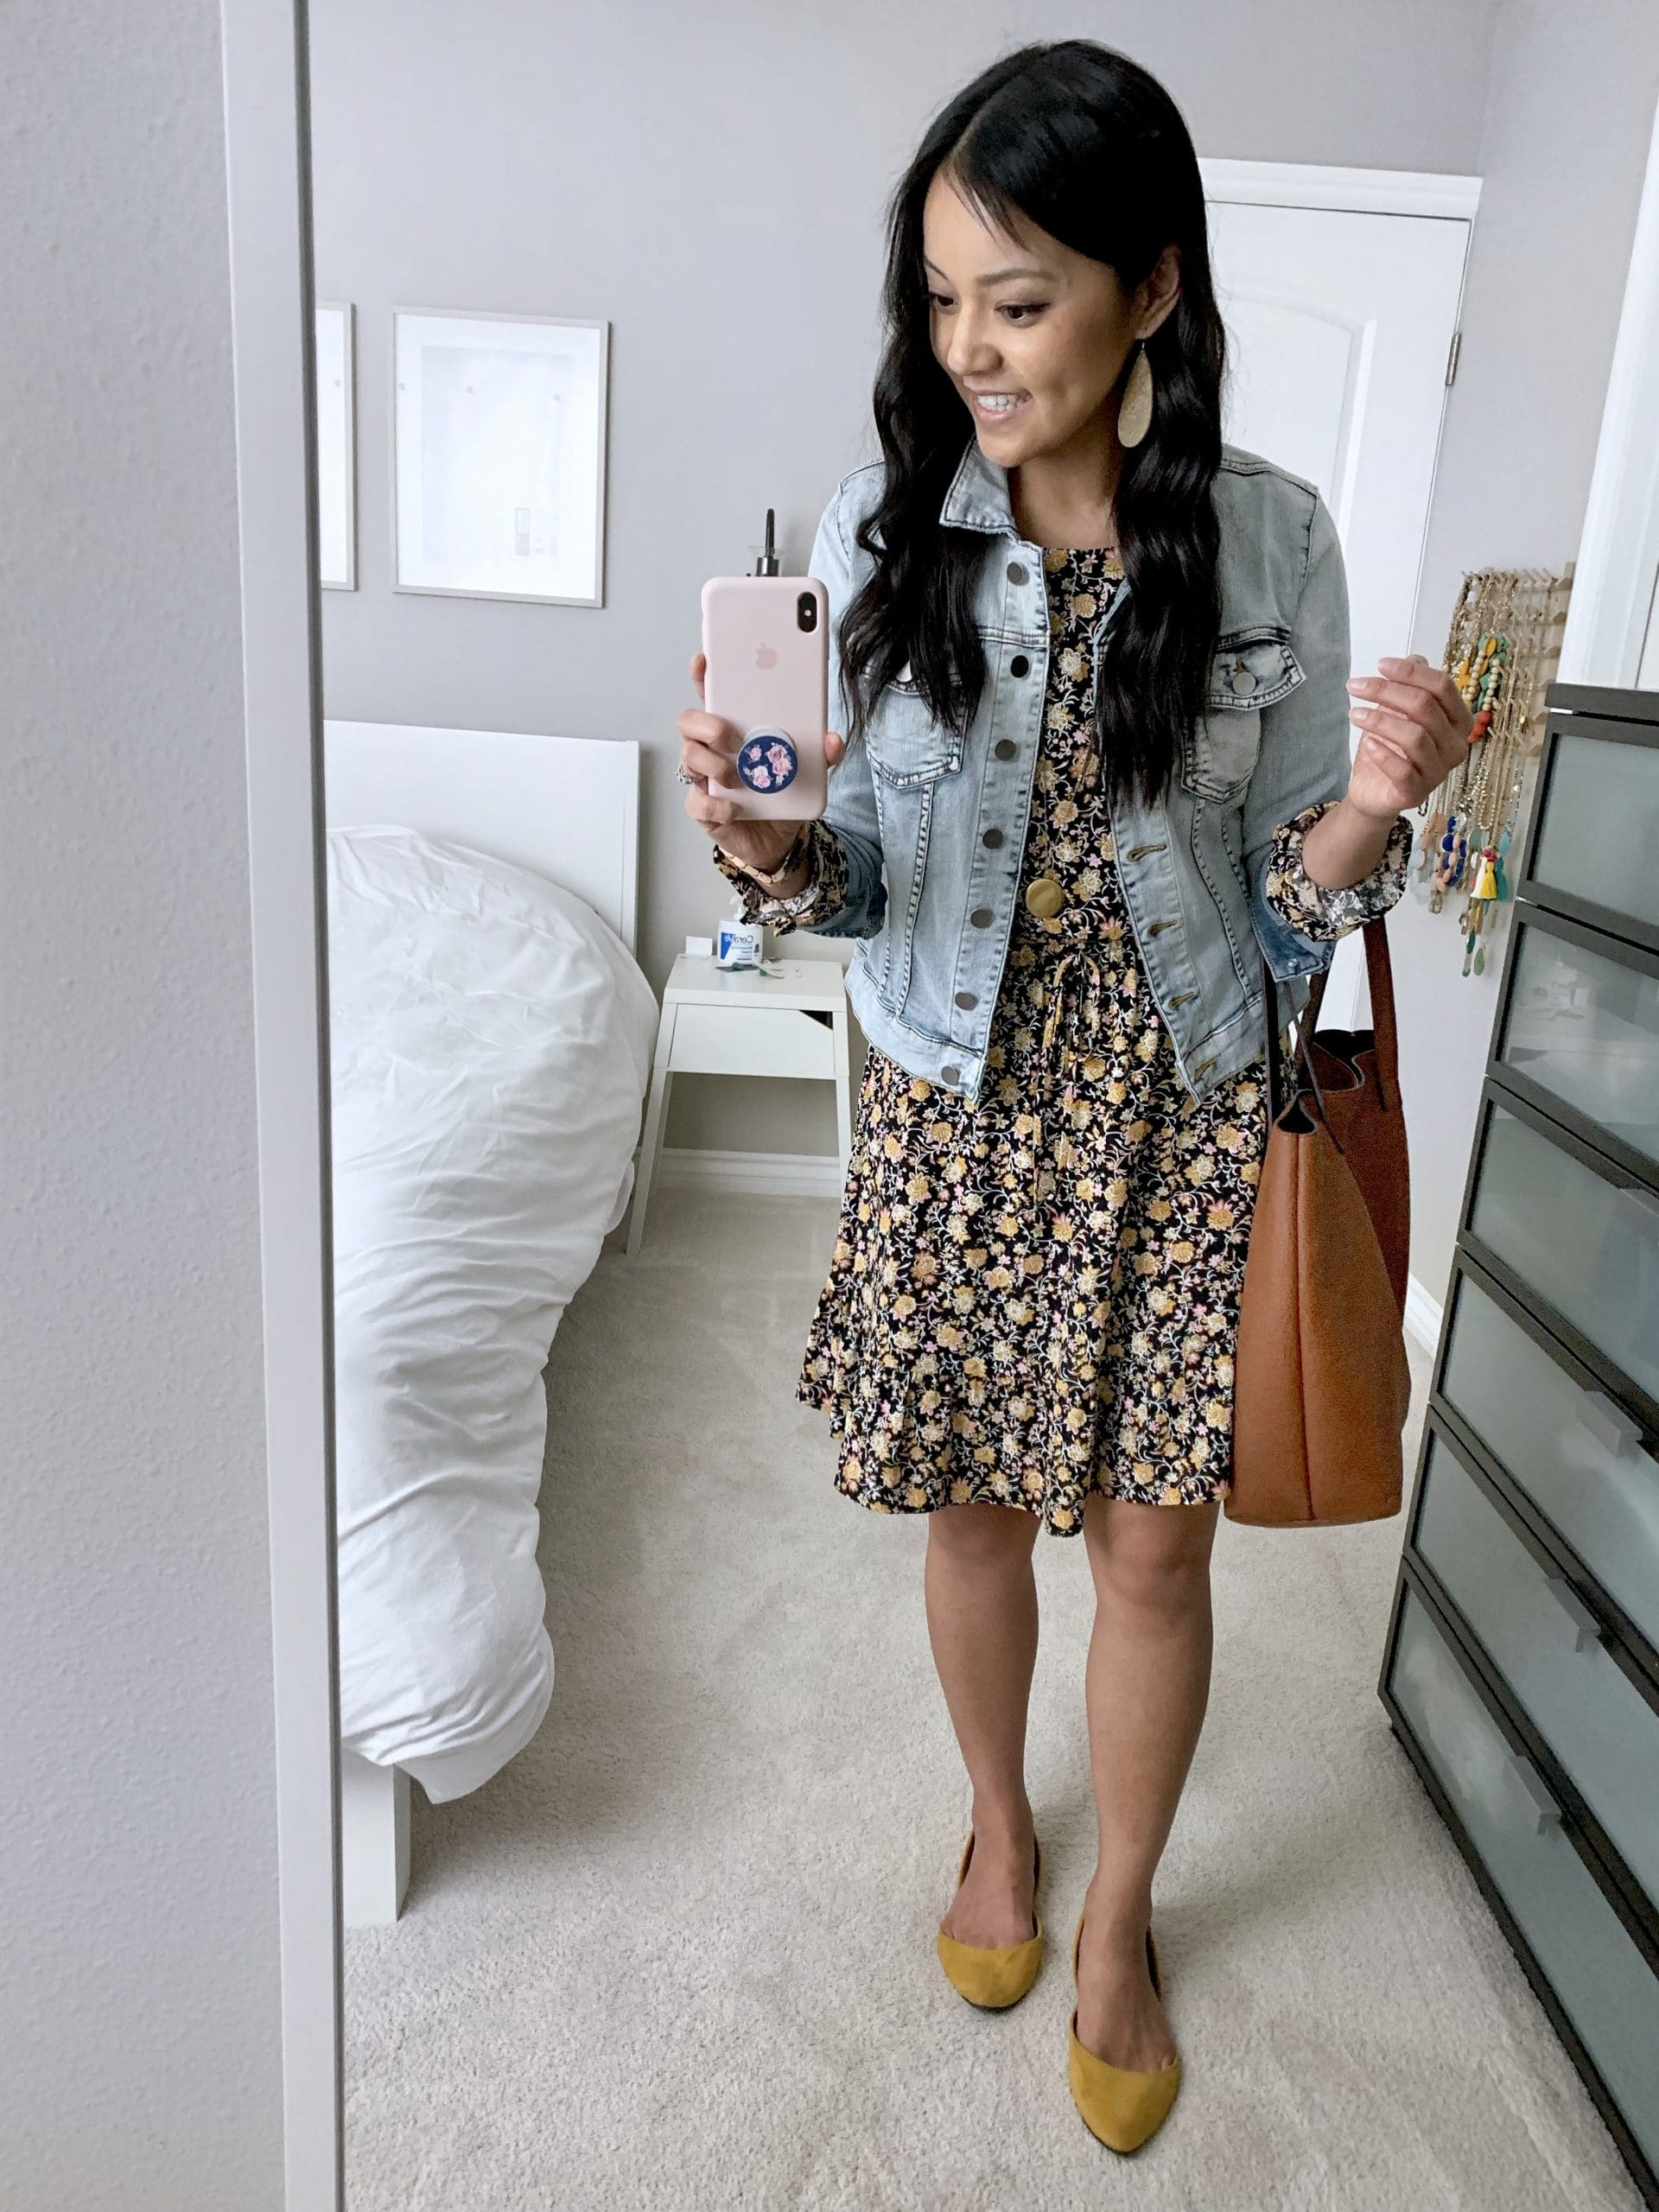 Spring Dress Outfit: floral dress + denim jacket + yellow flats + cognac tote + gold leather teardrop earrings